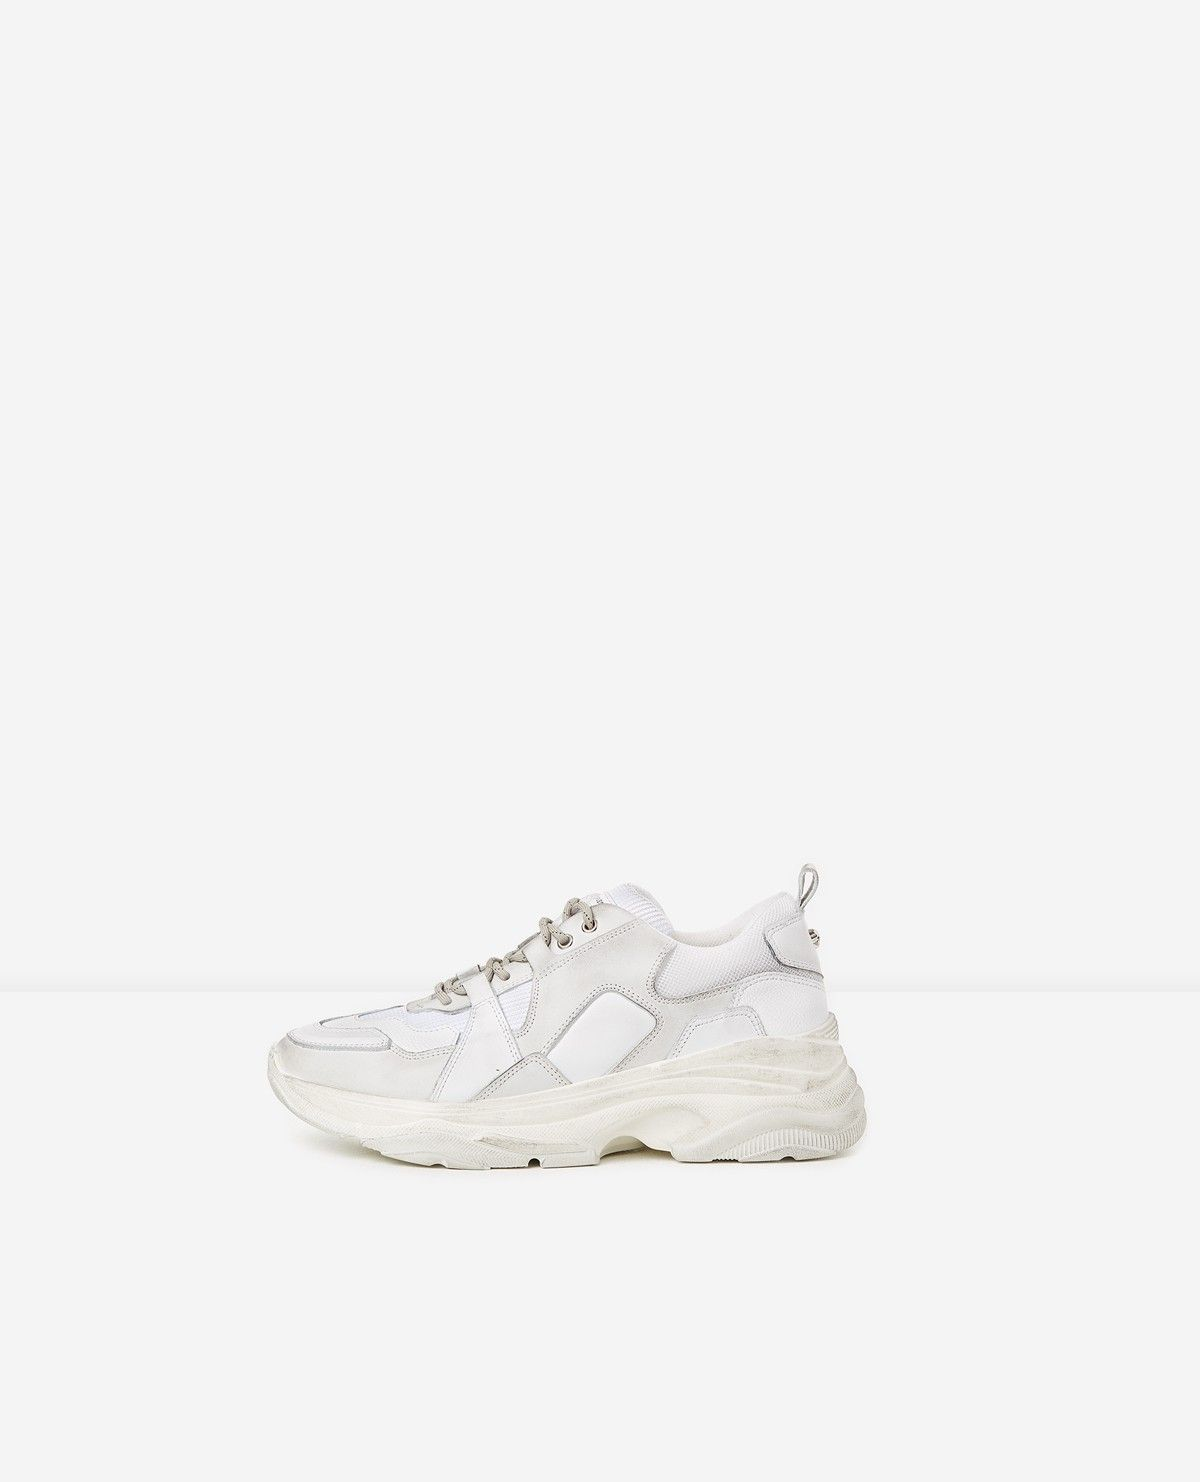 9eb0f4097f Wide sole white trainers - THE KOOPLES | sneakin' in 2019 | Shoes ...